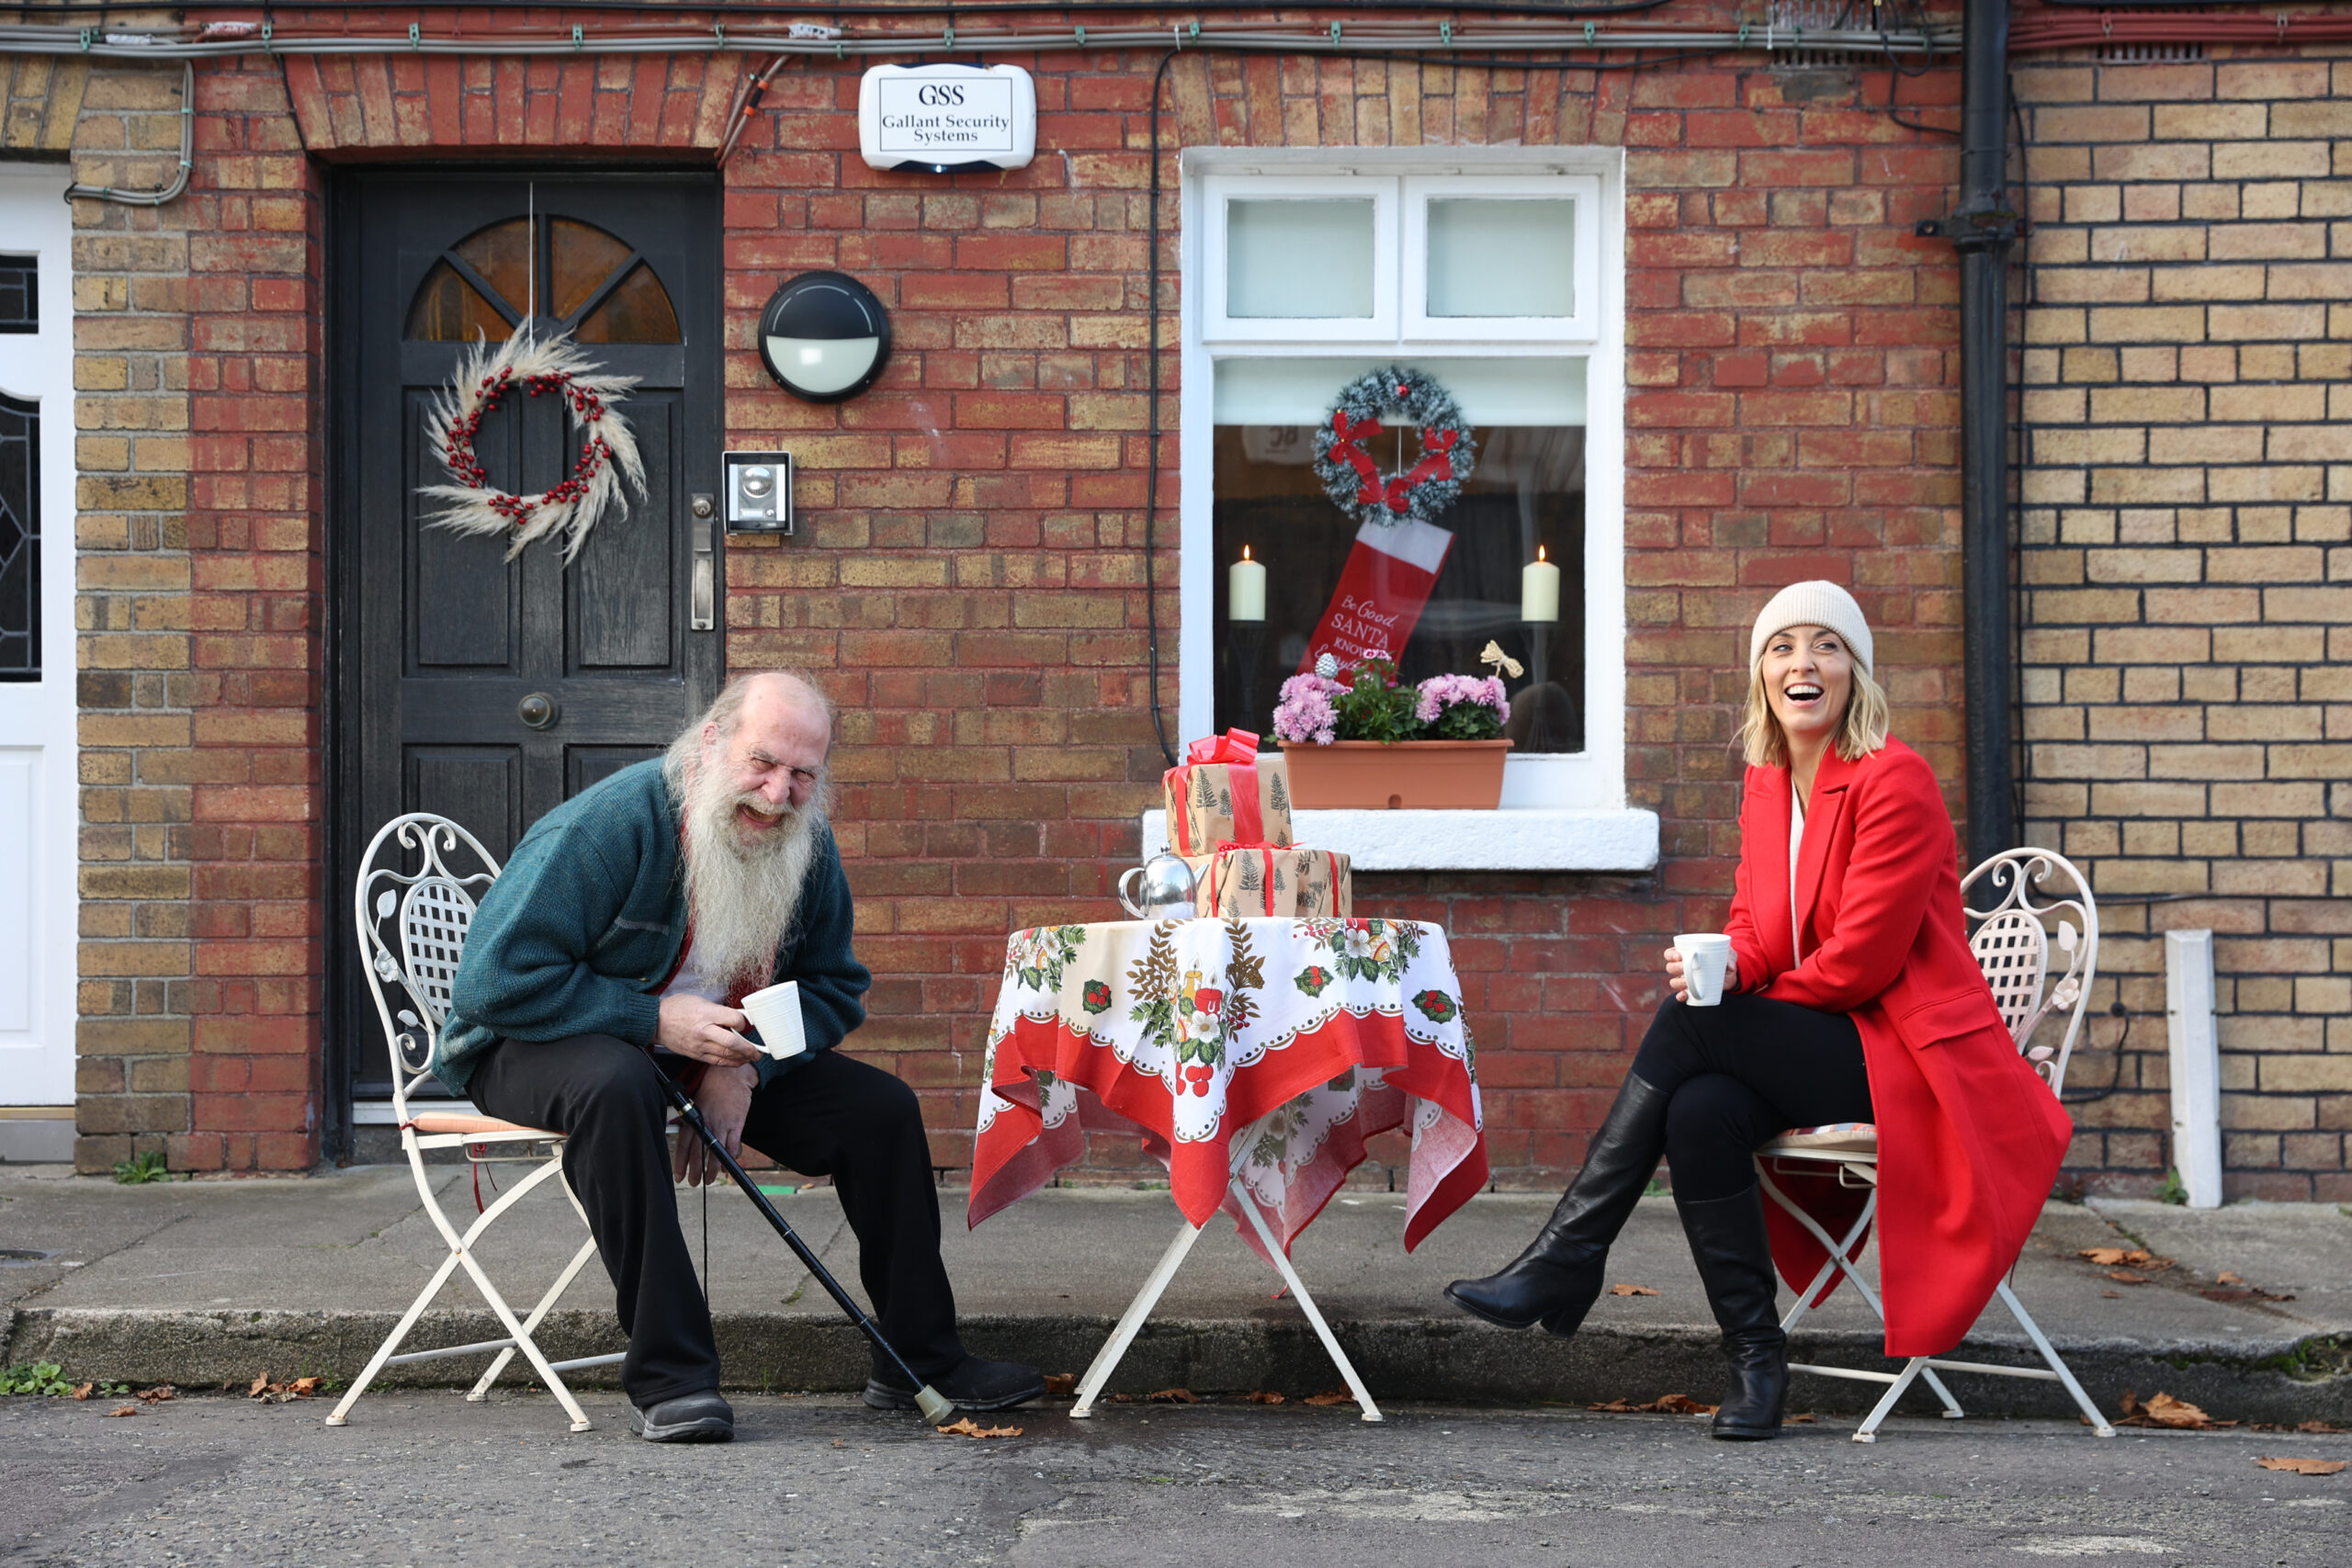 Kathryn Thomas is asking the public to reach out and give a helping hand to older people who may be struggling during the festive season